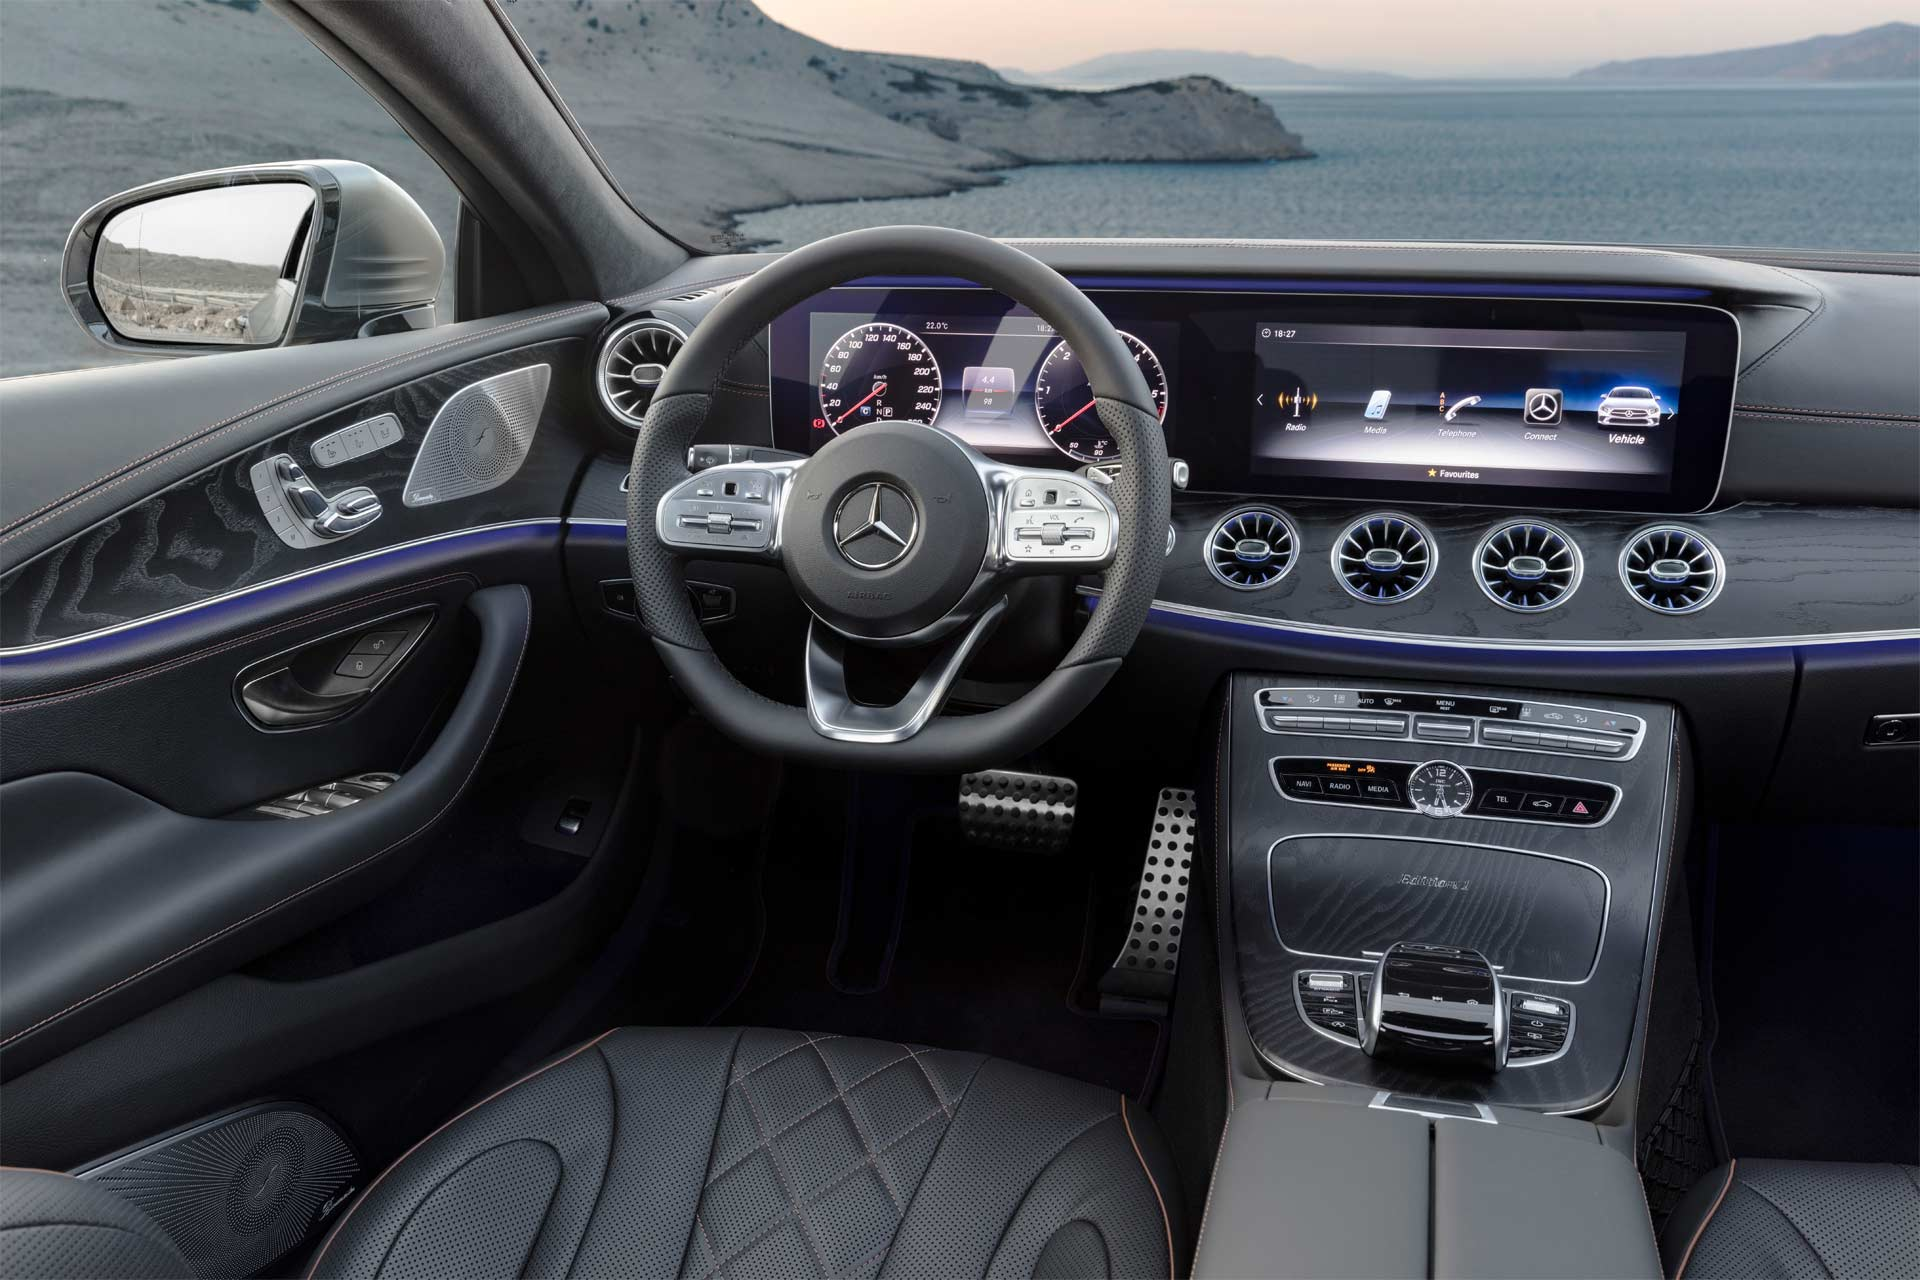 2019-Mercedes-Benz-CLS-interior_3